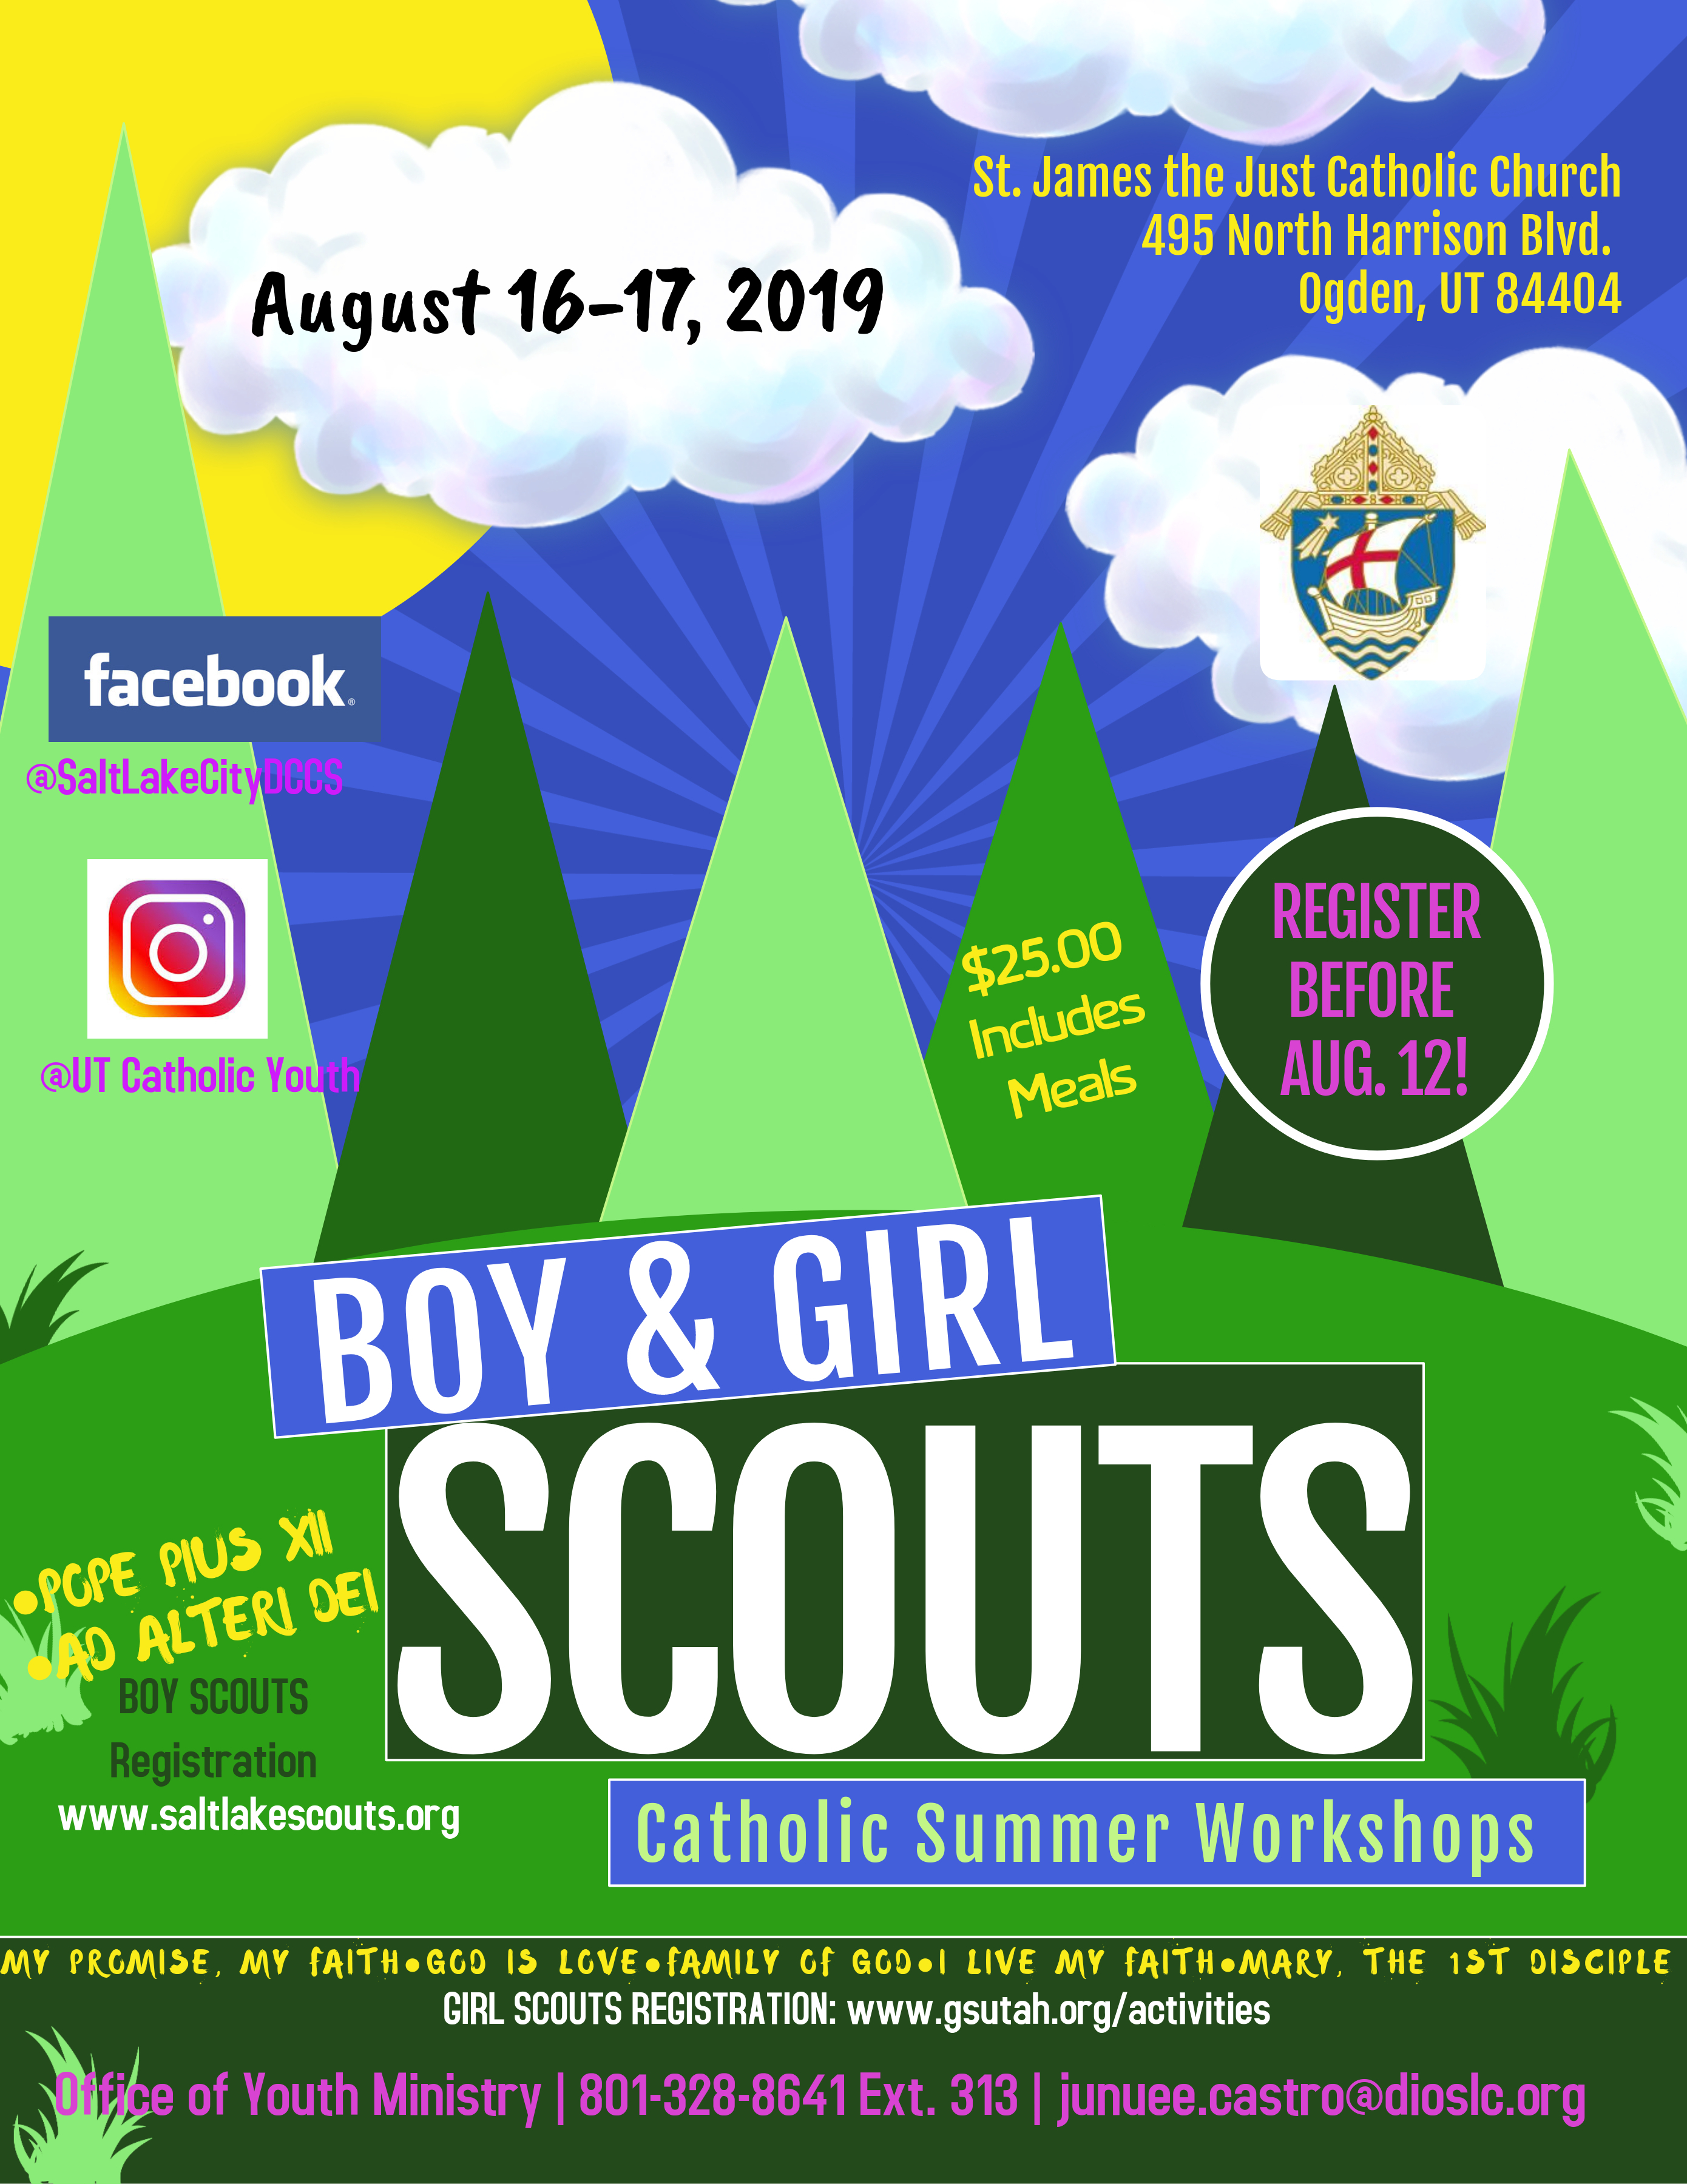 Catholic Summer Workshops for Scouts